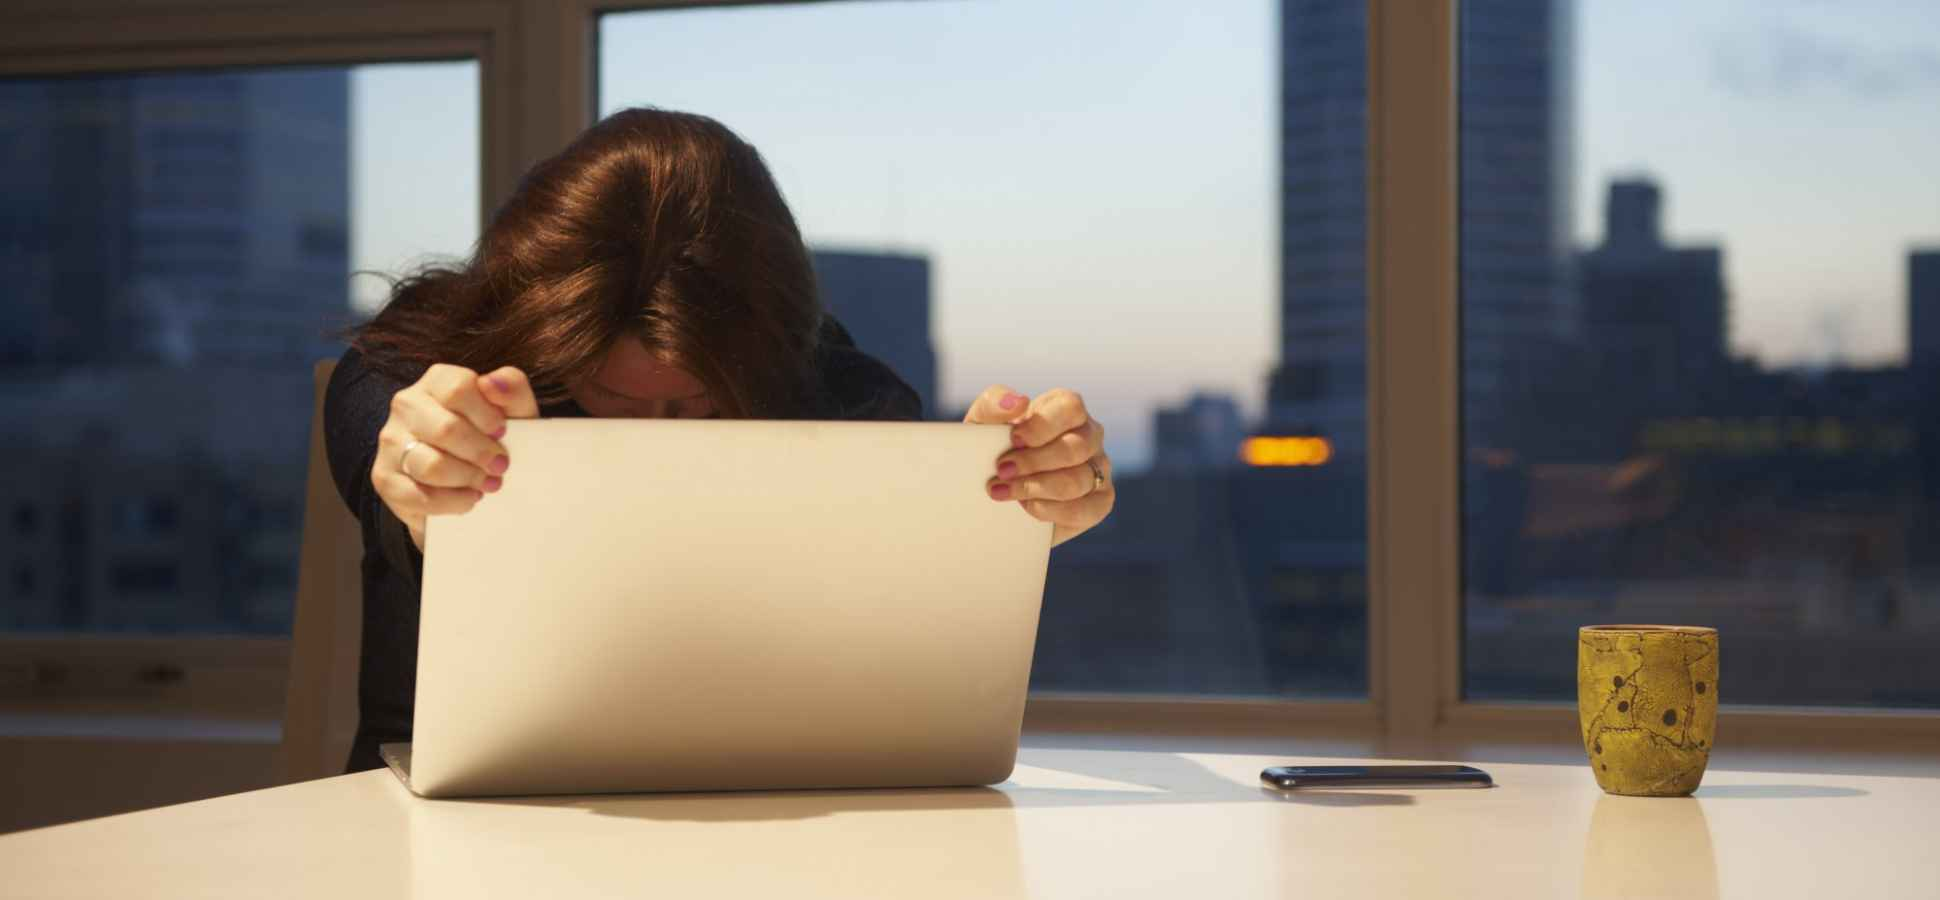 20 Percent Will Stop Reading Your Email if You Make This 1 Mistake